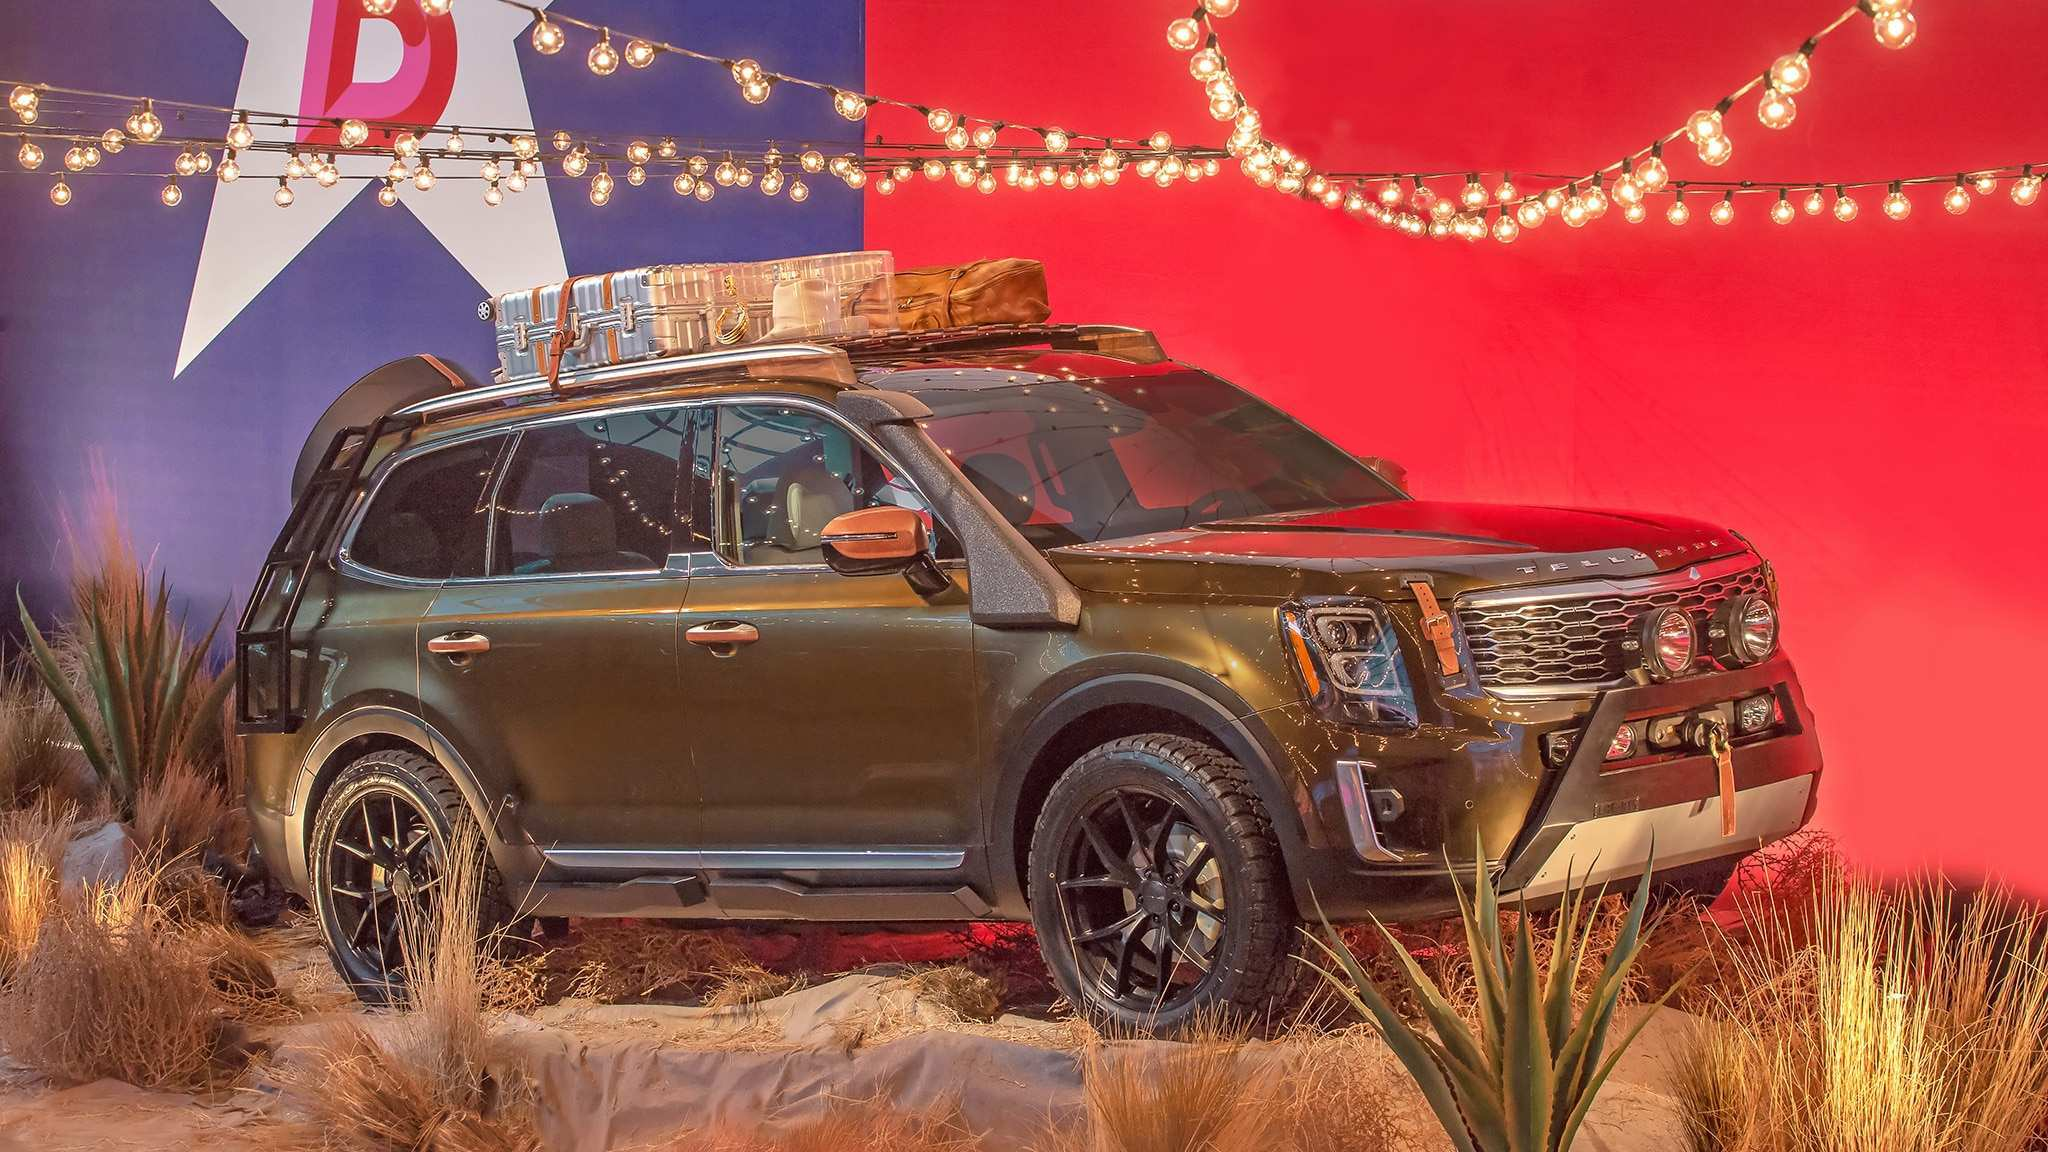 30 New 2020 Kia Telluride Trim Levels Prices by 2020 Kia Telluride Trim Levels